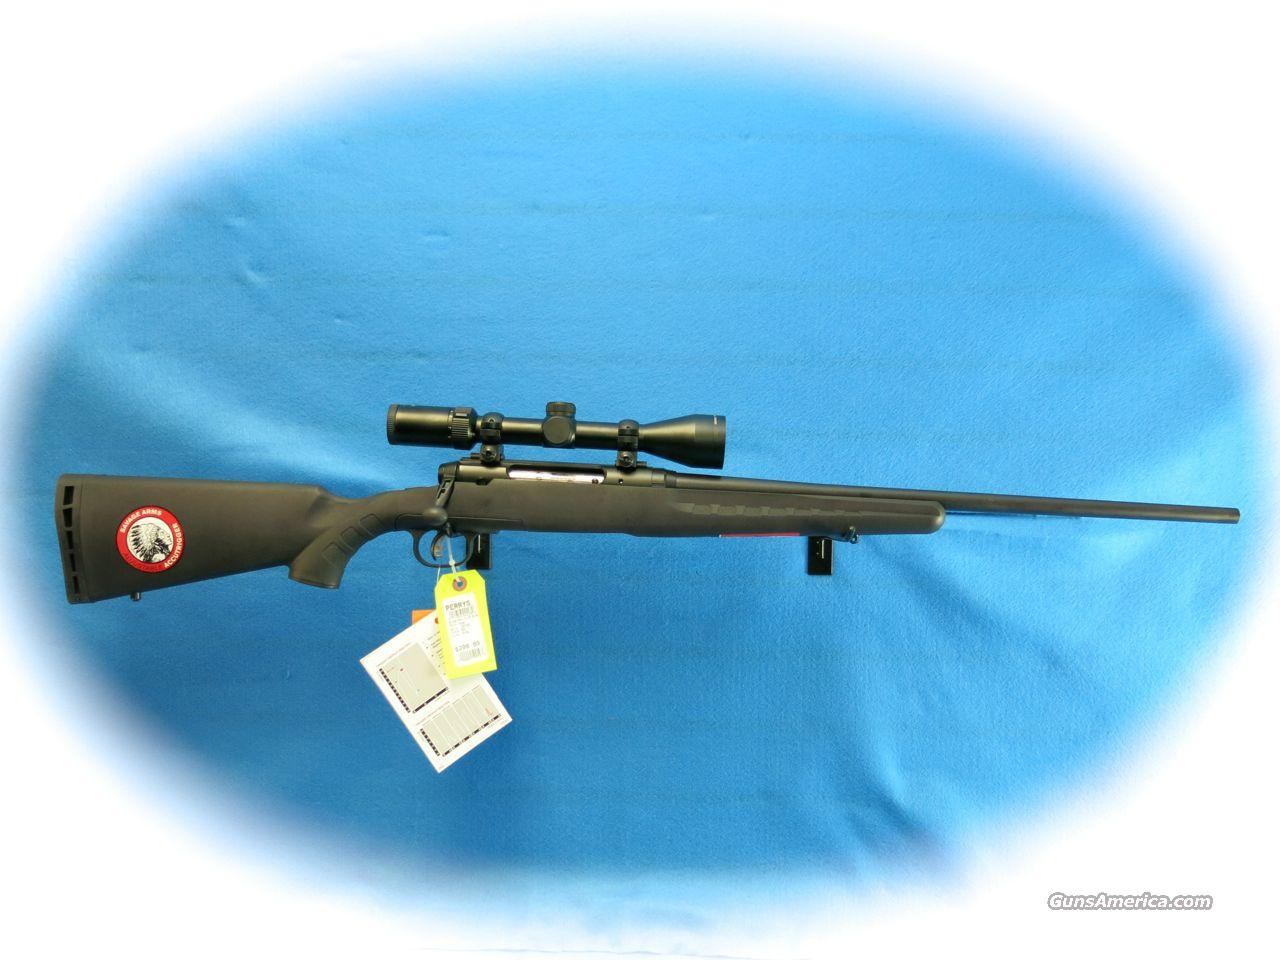 **SALE!!** Savage Axis II Xp Bolt Action Rifle/Scope Pkg .30-06 Cal **New**  Guns > Rifles > Savage Rifles > Accutrigger Models > Sporting